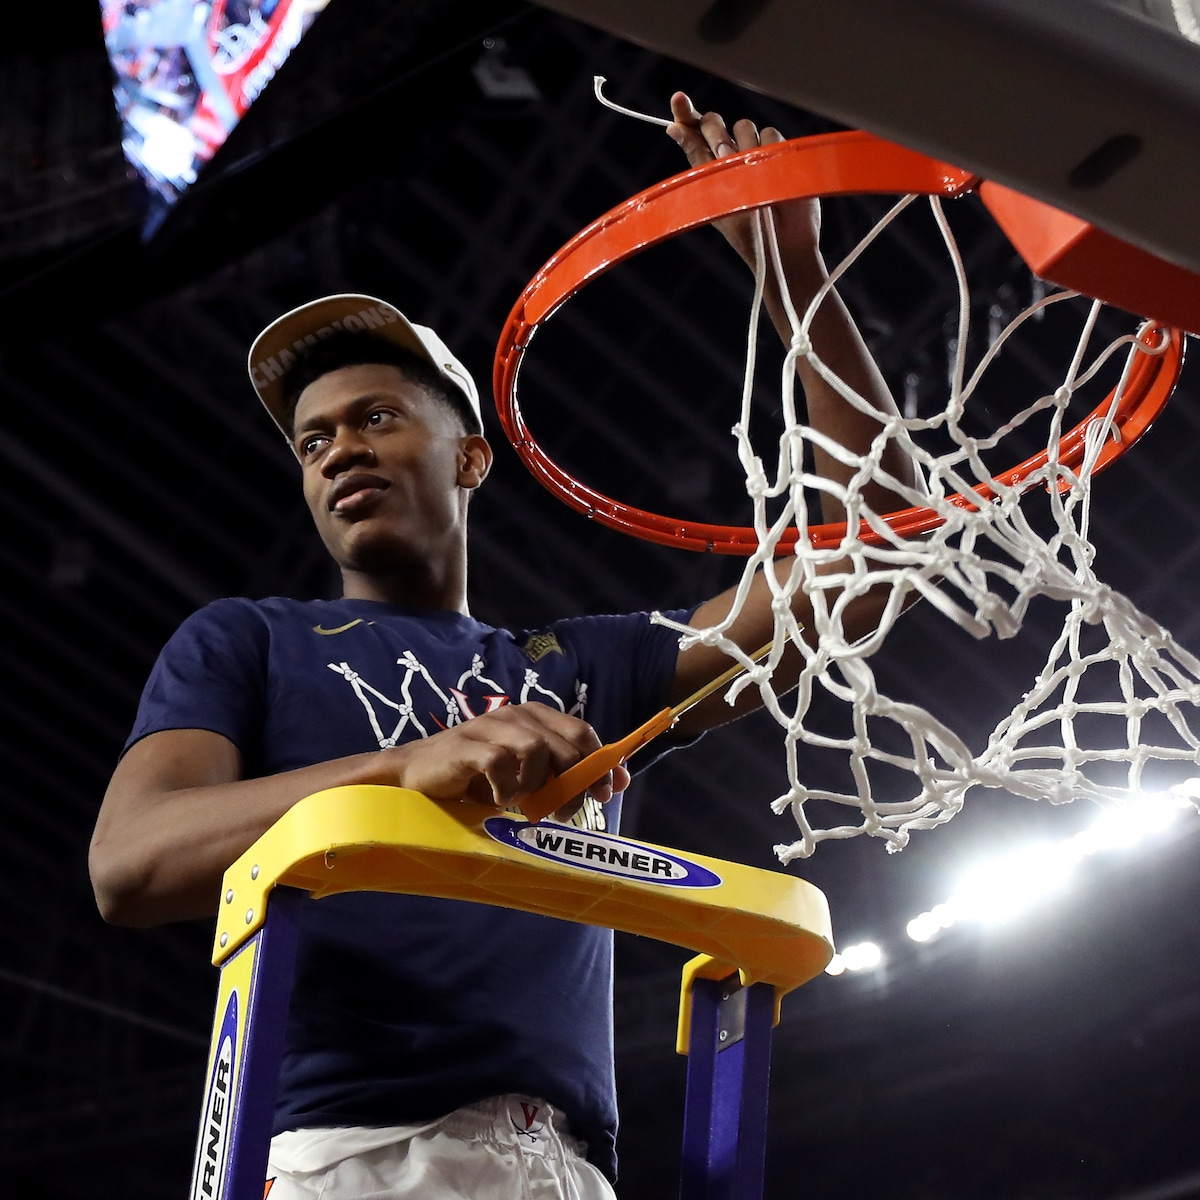 De'Andre Hunter Cutting down a Net during March Madness